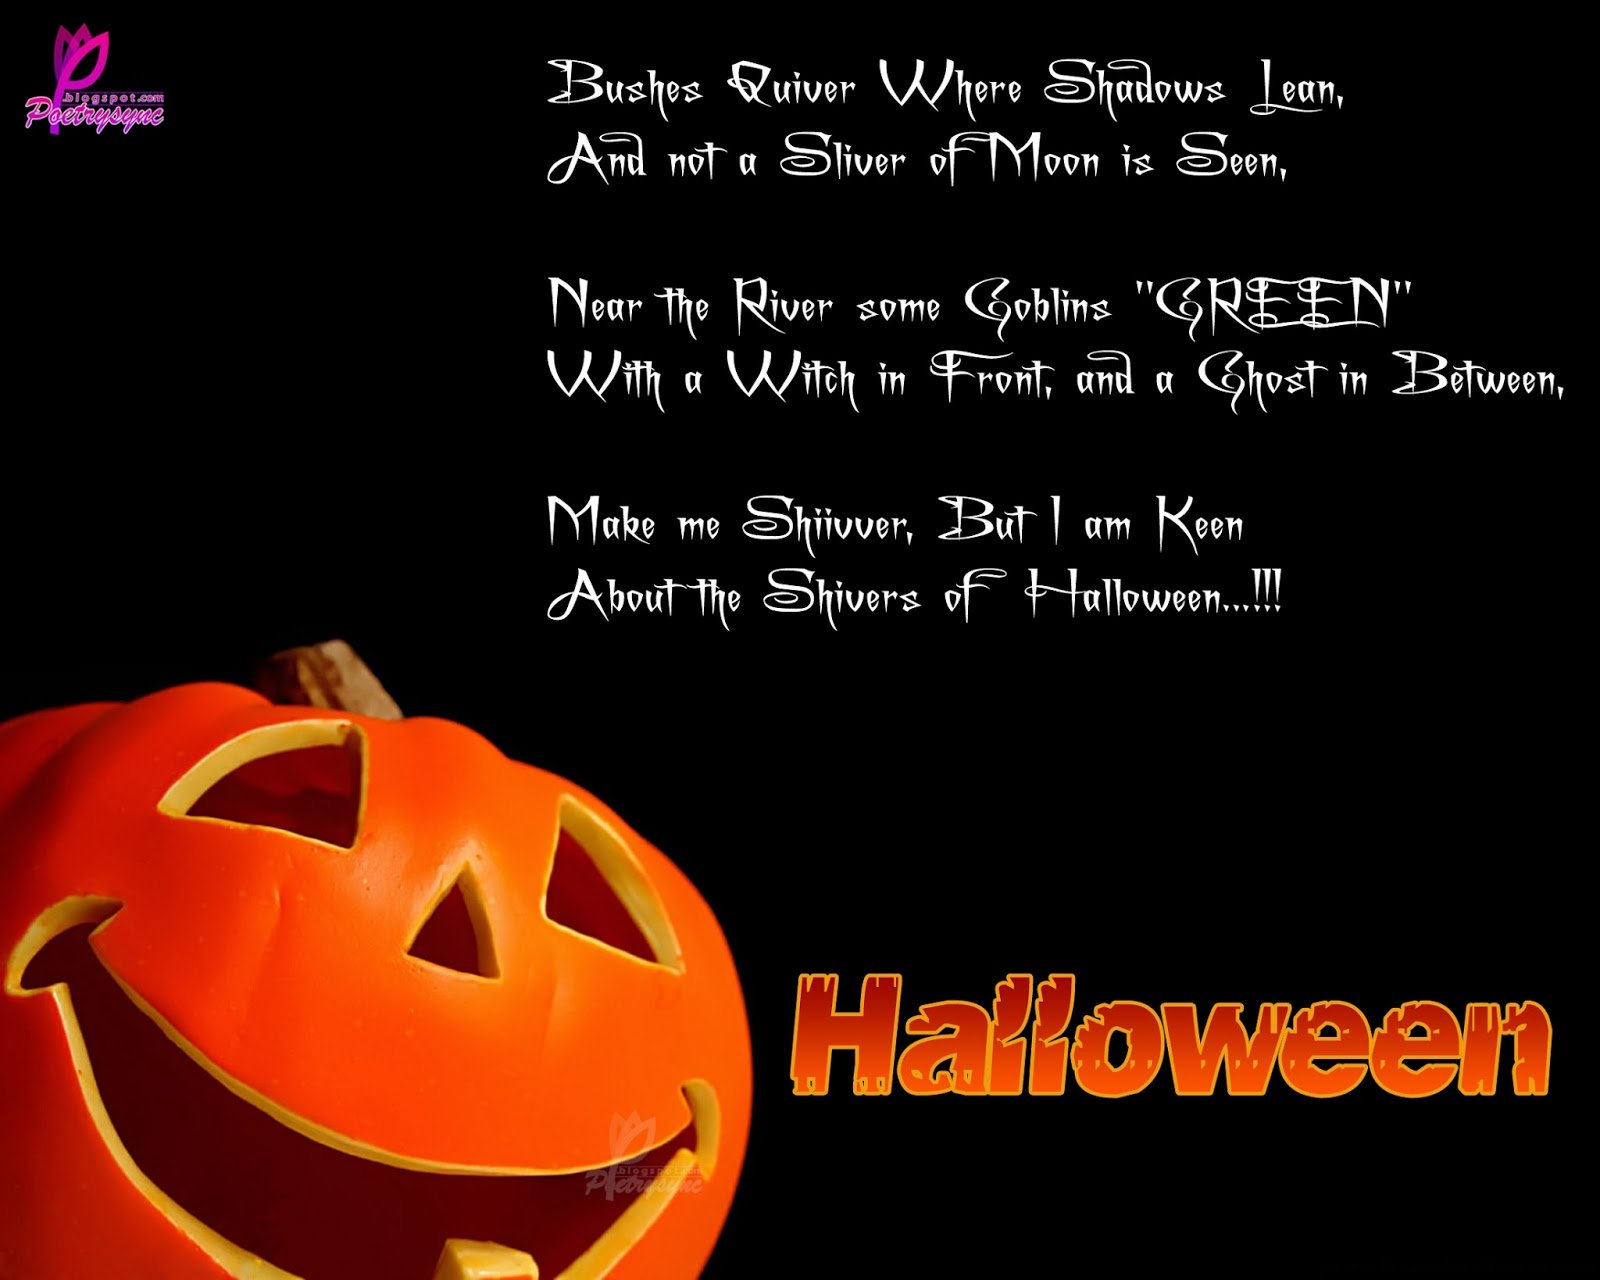 Good Morning One Word Or Two : Scary halloween sayings and quotes quotesgram